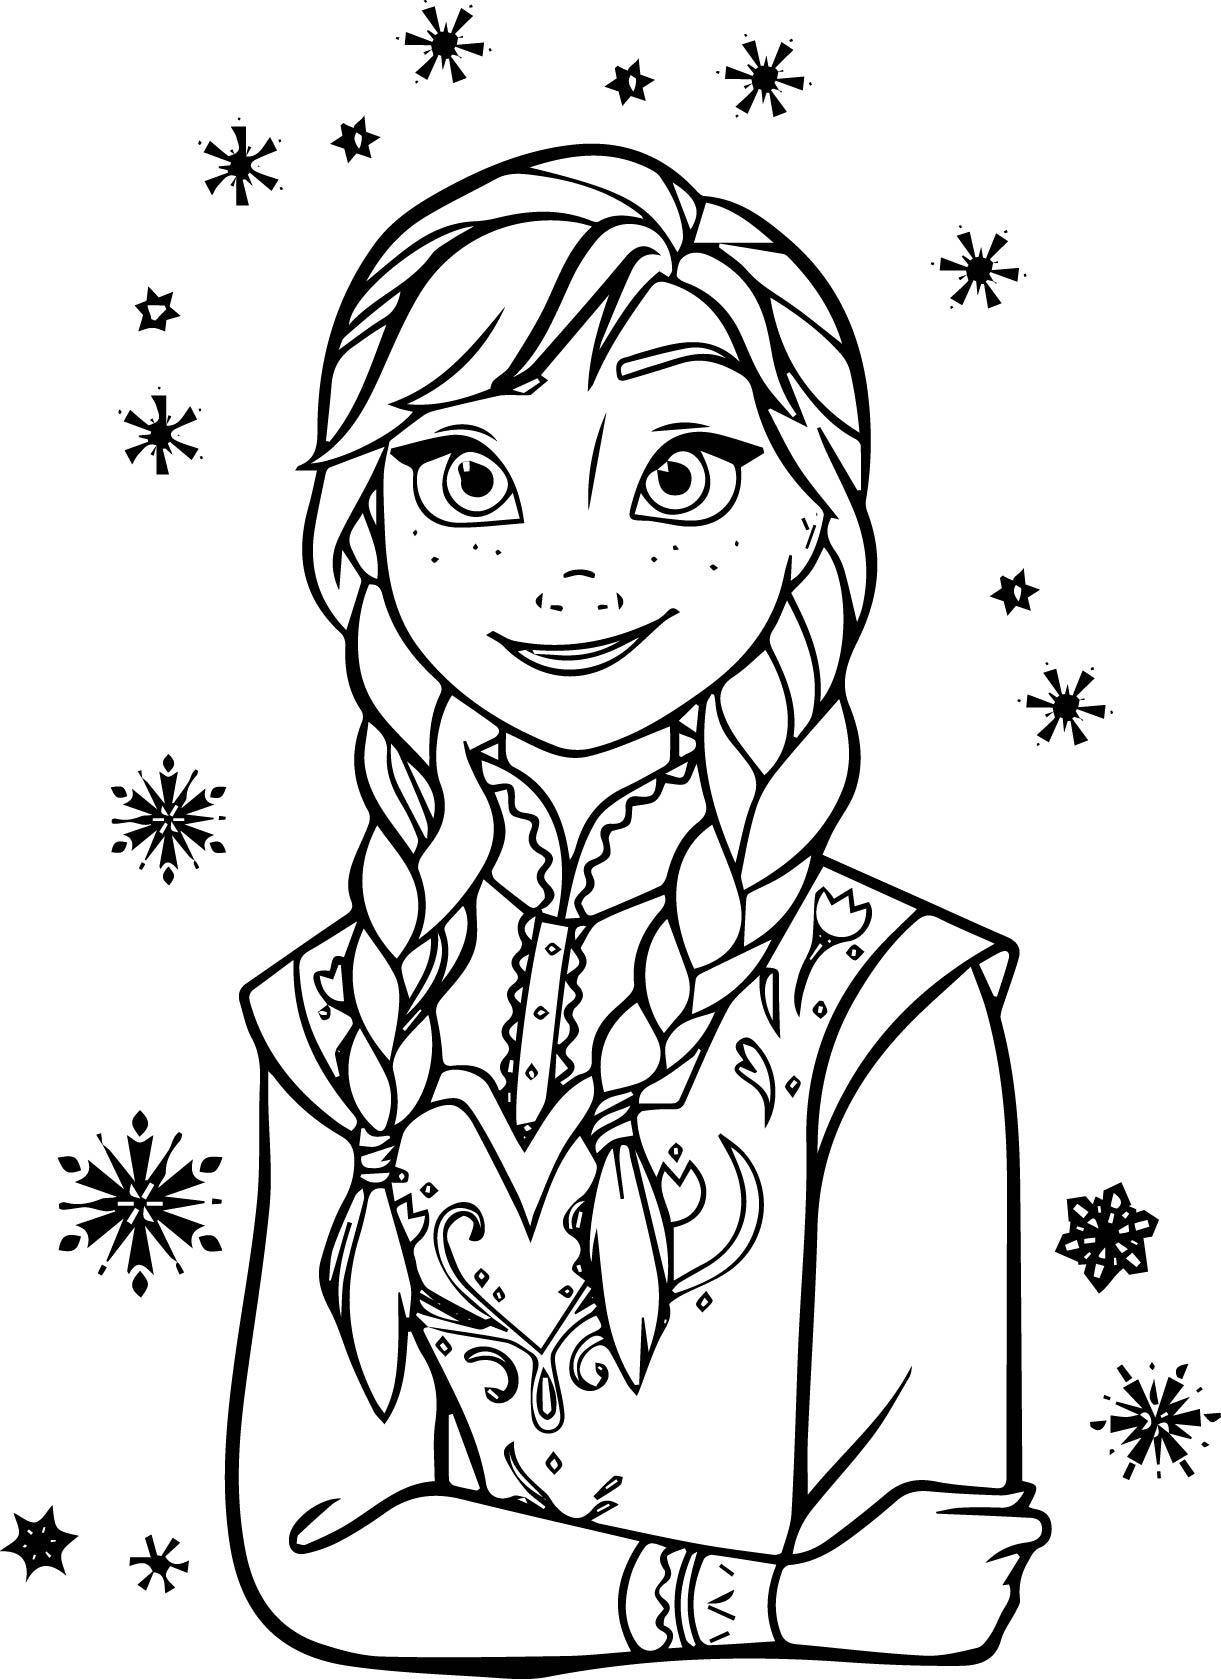 Frozen Coloring Pages Free Printables At Getdrawings Com Free For